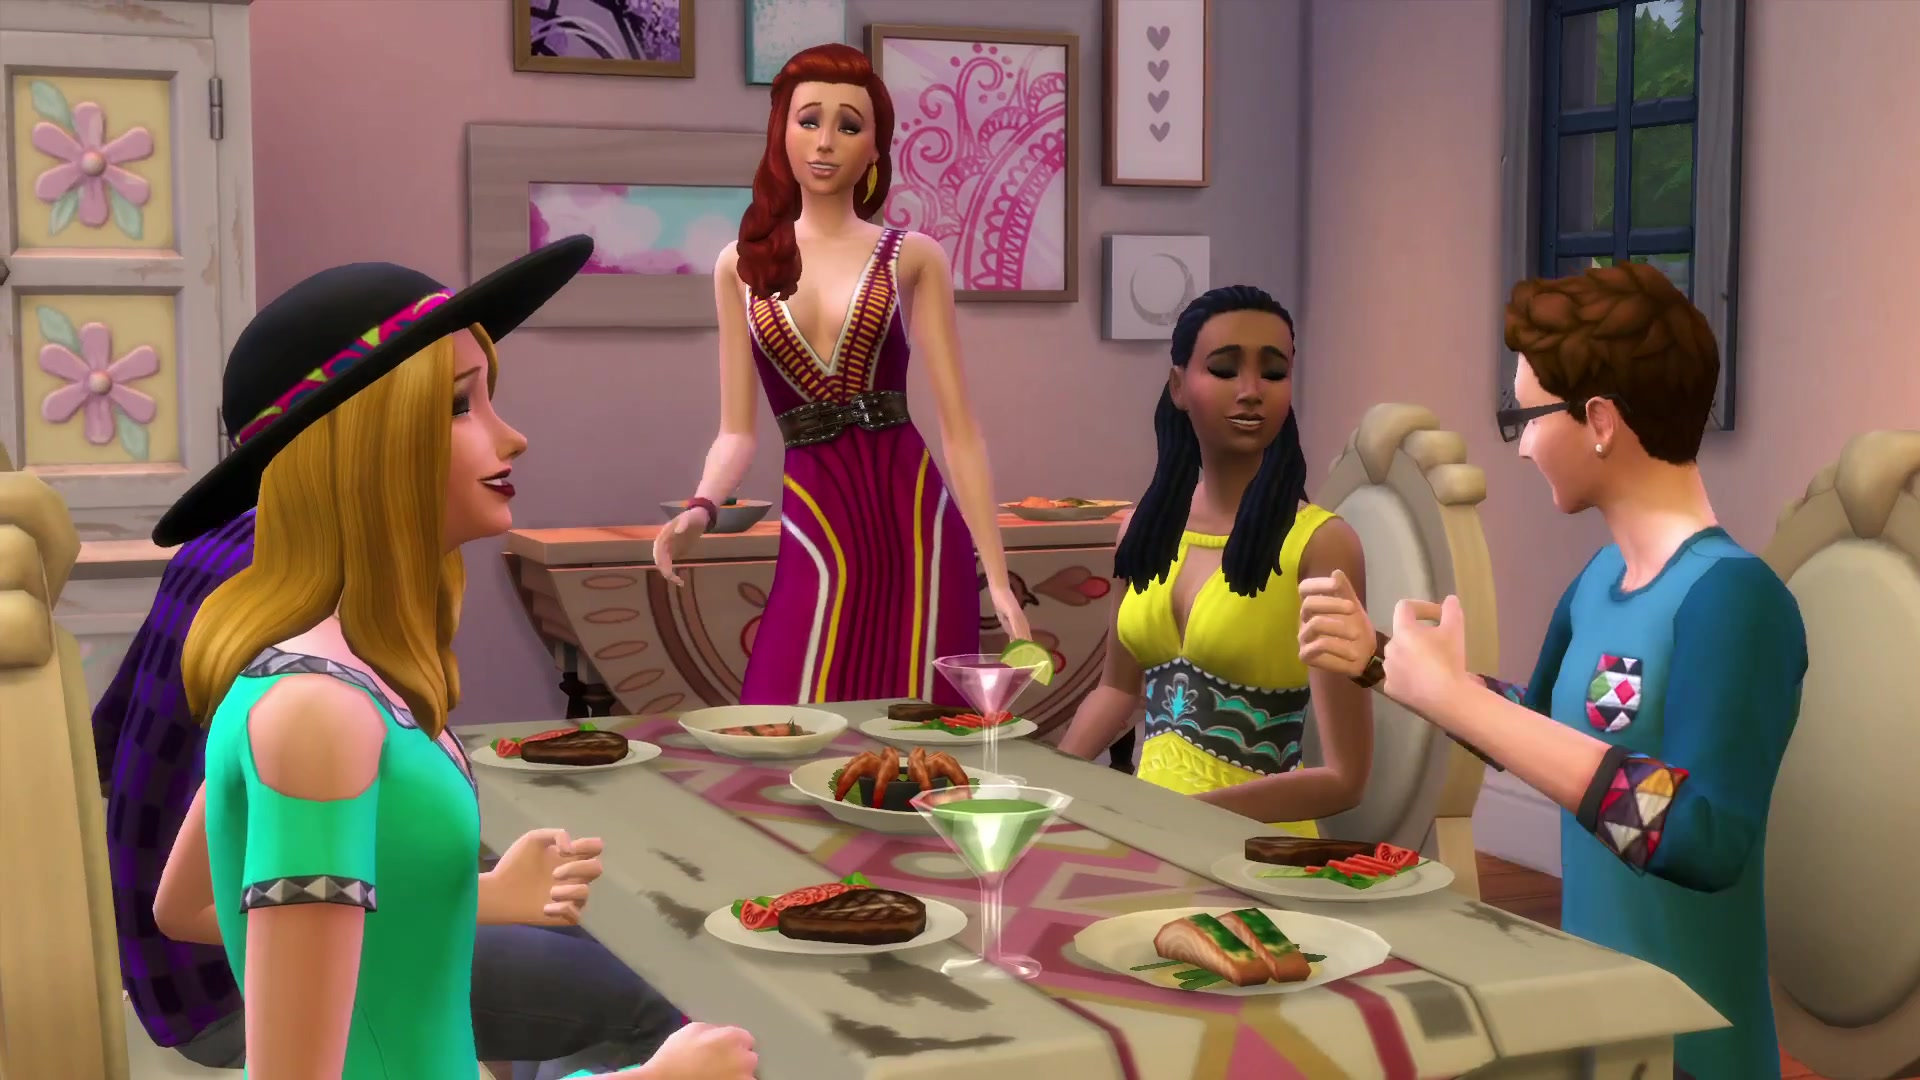 the sims 4 movie hangout stuff 45 trailer screens simsvip